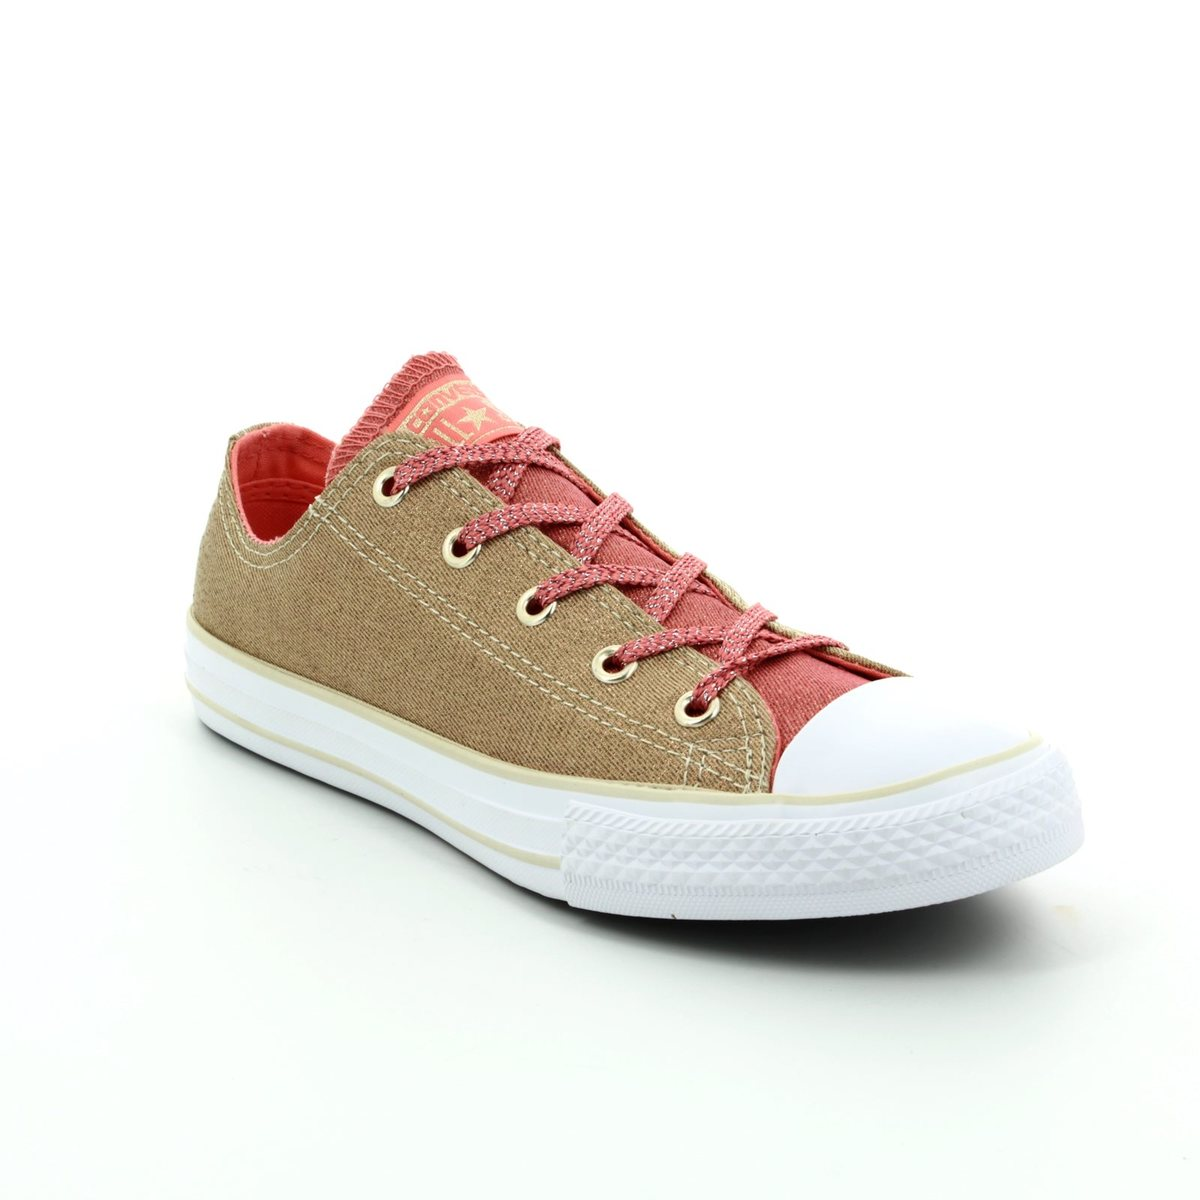 7bf3d1c37da9 Converse Trainers - Gold - 658111C Chuck Taylor ALL STAR OX Youth